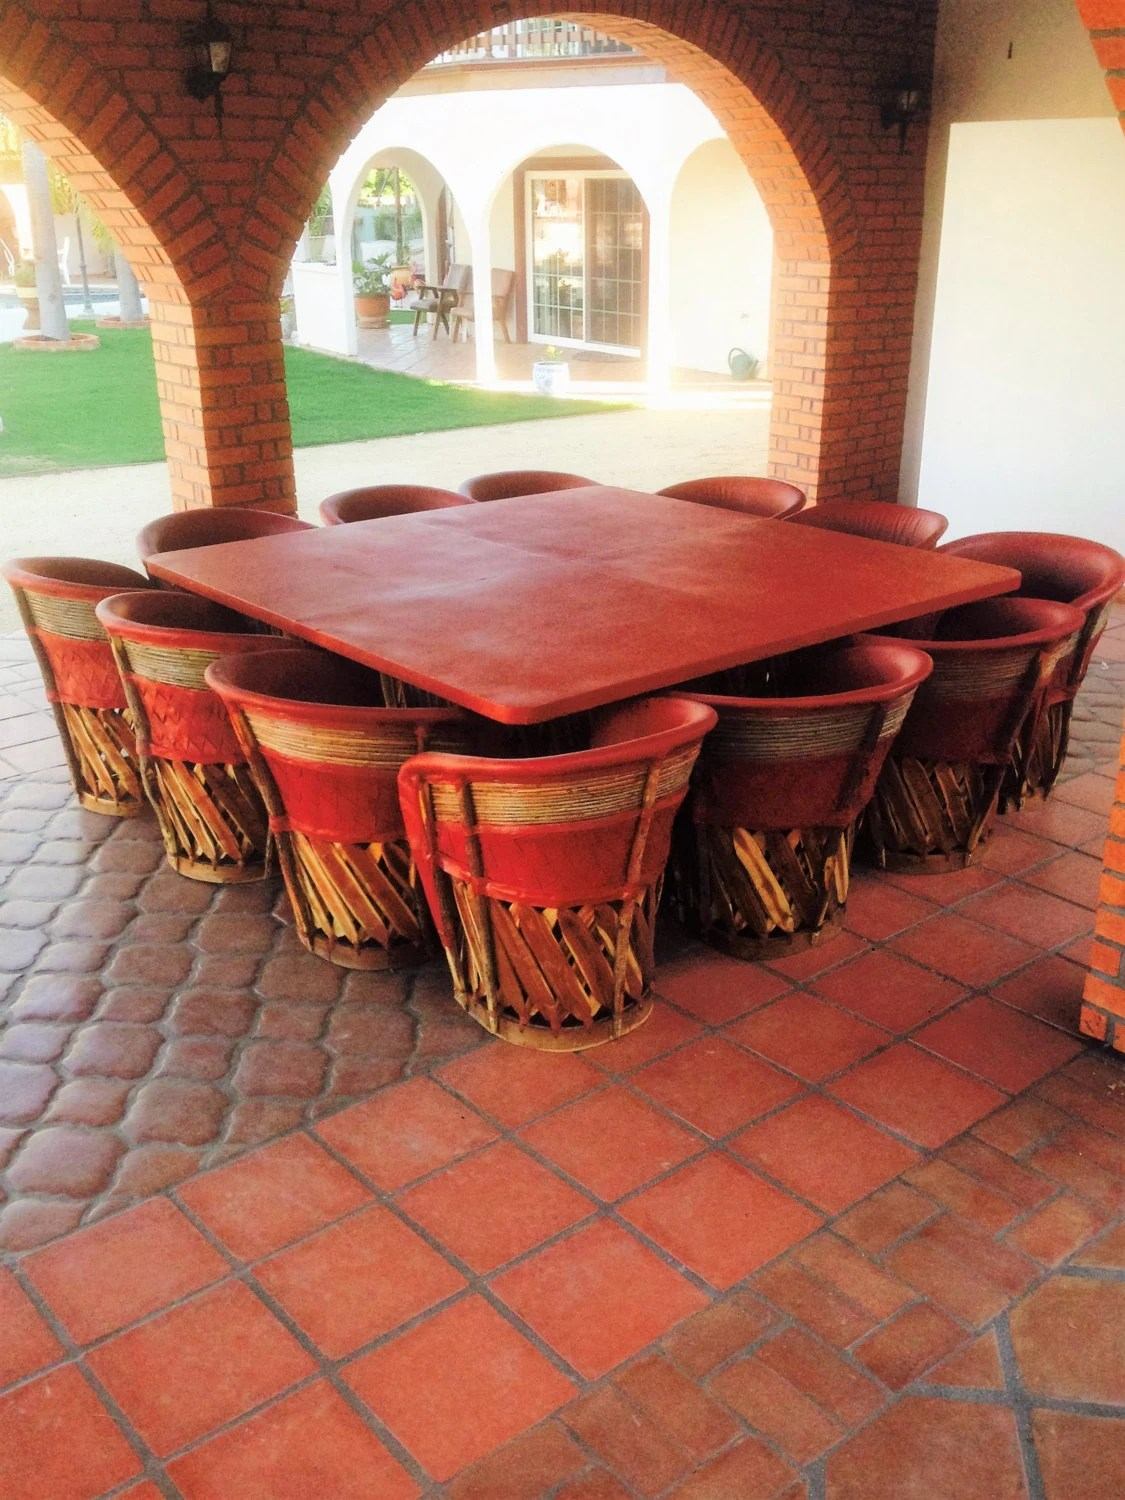 12 Chairs Dining Set With Large Table And 12 Chairs Equipales Rustic